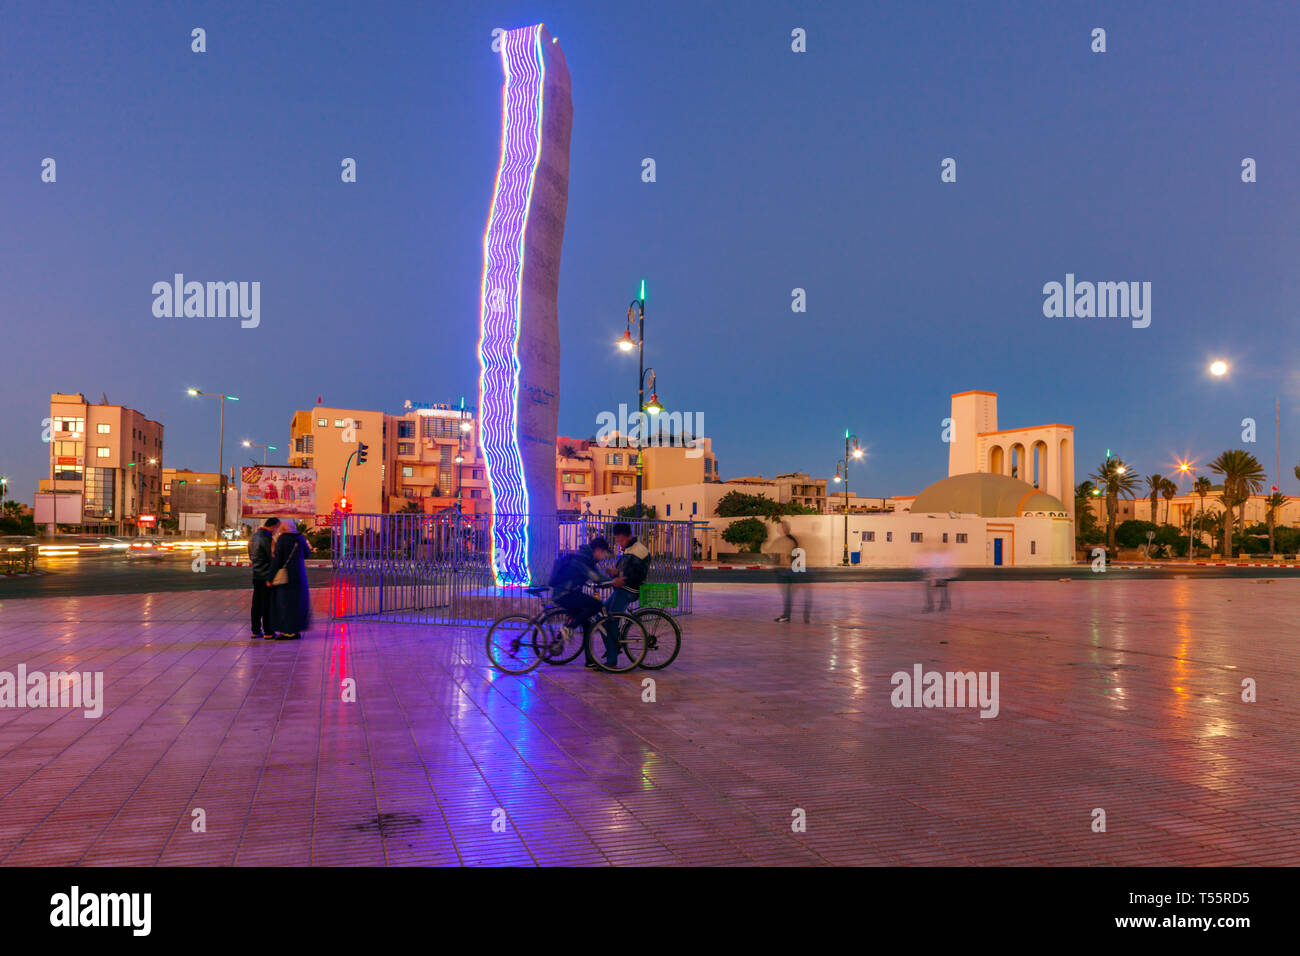 Modern sculpture in town square at sunset in Dakhla, Morocco - Stock Image